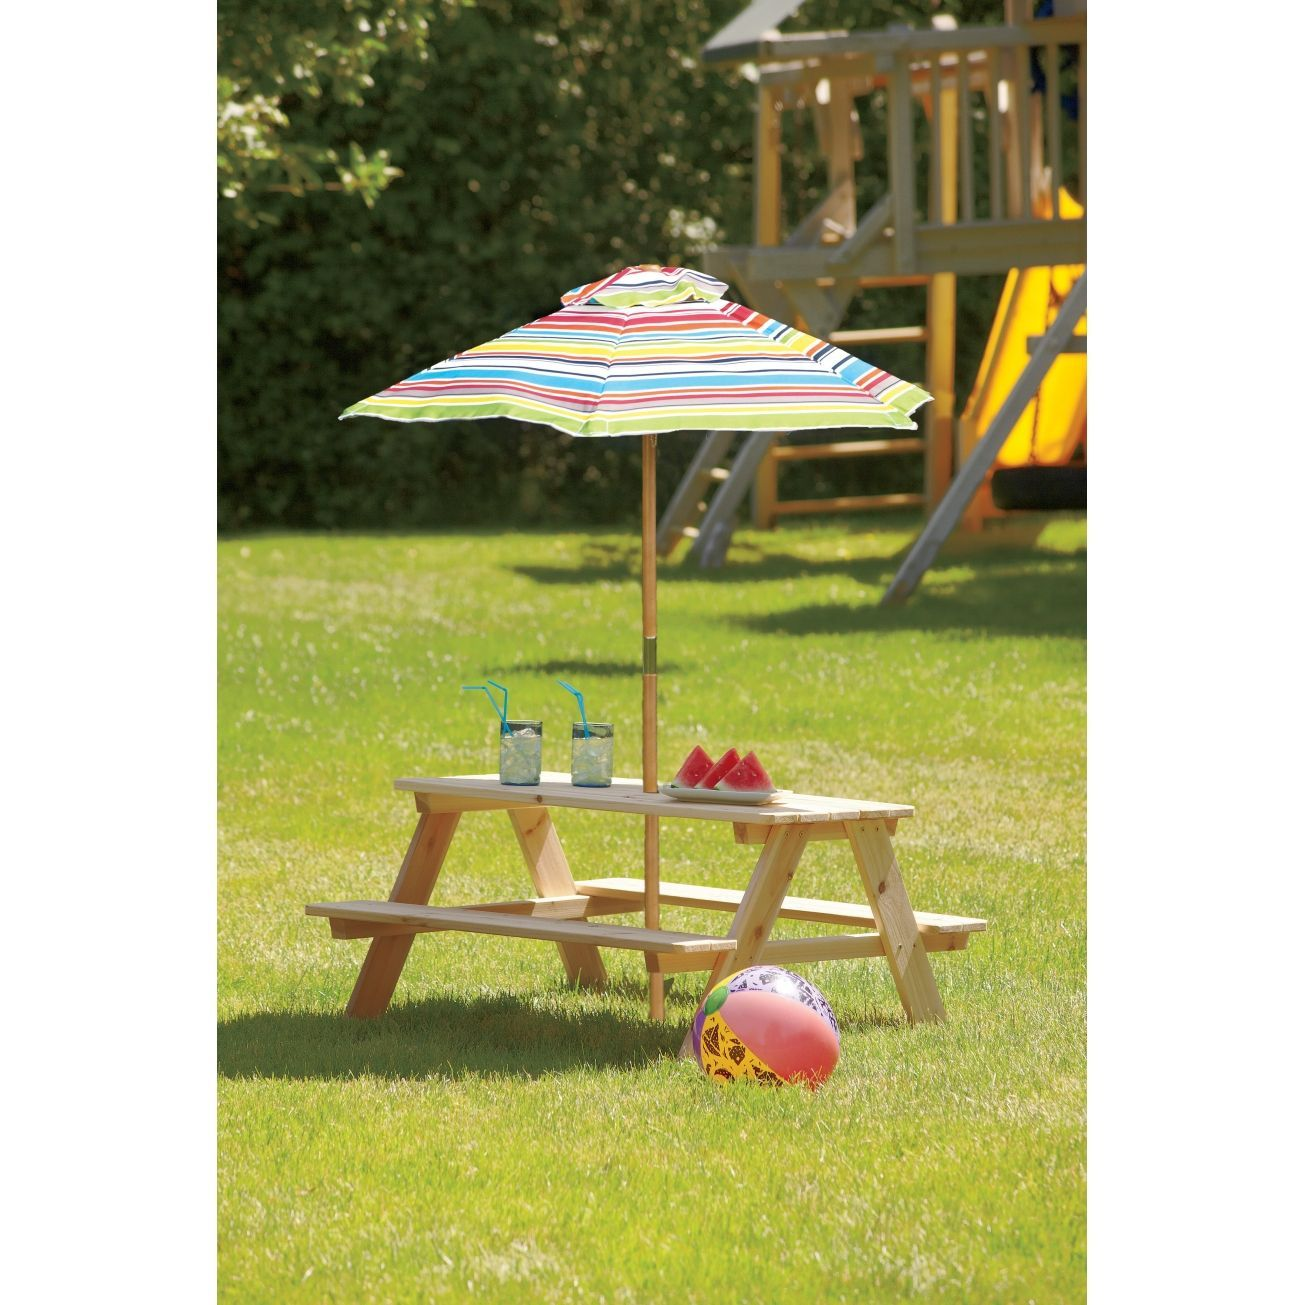 Awesome Kids Picnic Table picnic tables with chairs